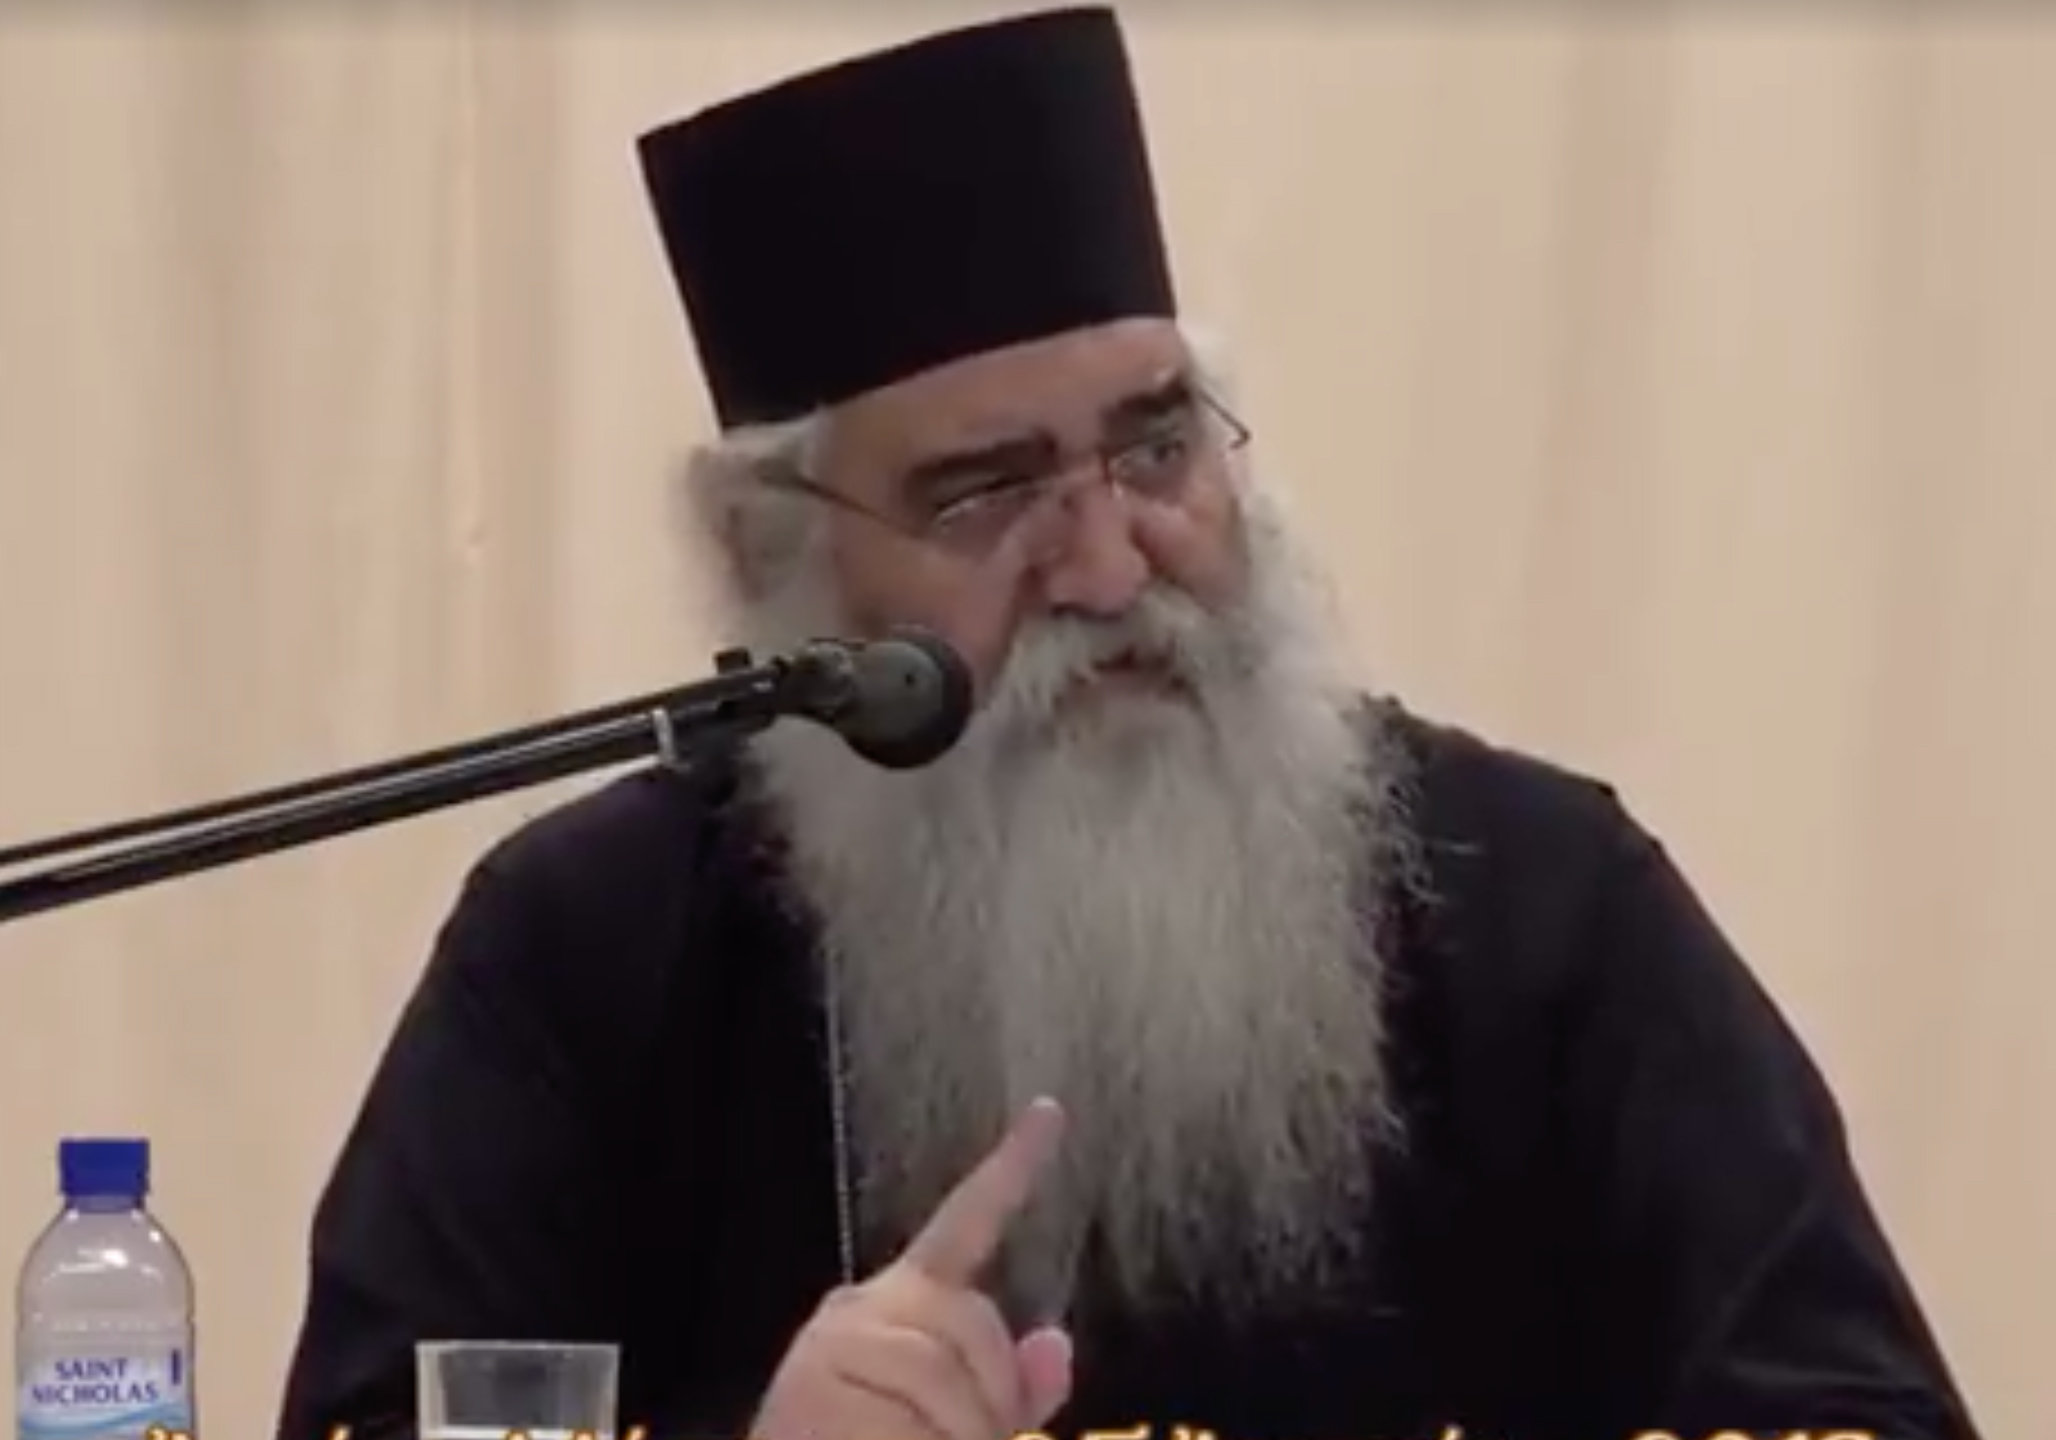 Bishop Neophytos of Morphou speaking into a microphone